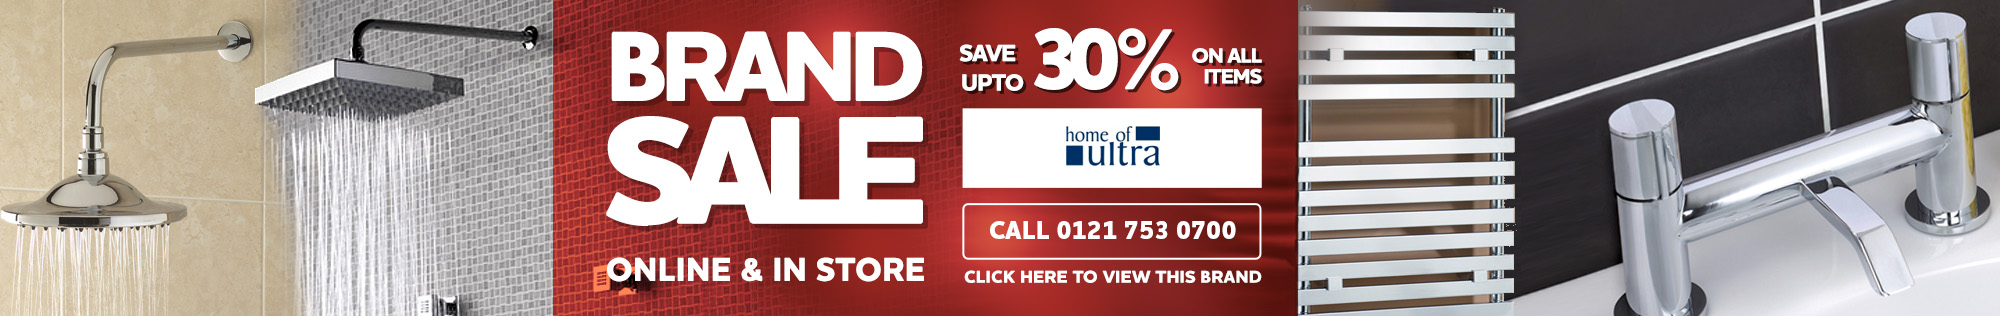 Ultra Hudson Reed Brand Sale - Save up to 30% on all items online & in store - Call 0121 753 0700 for more information